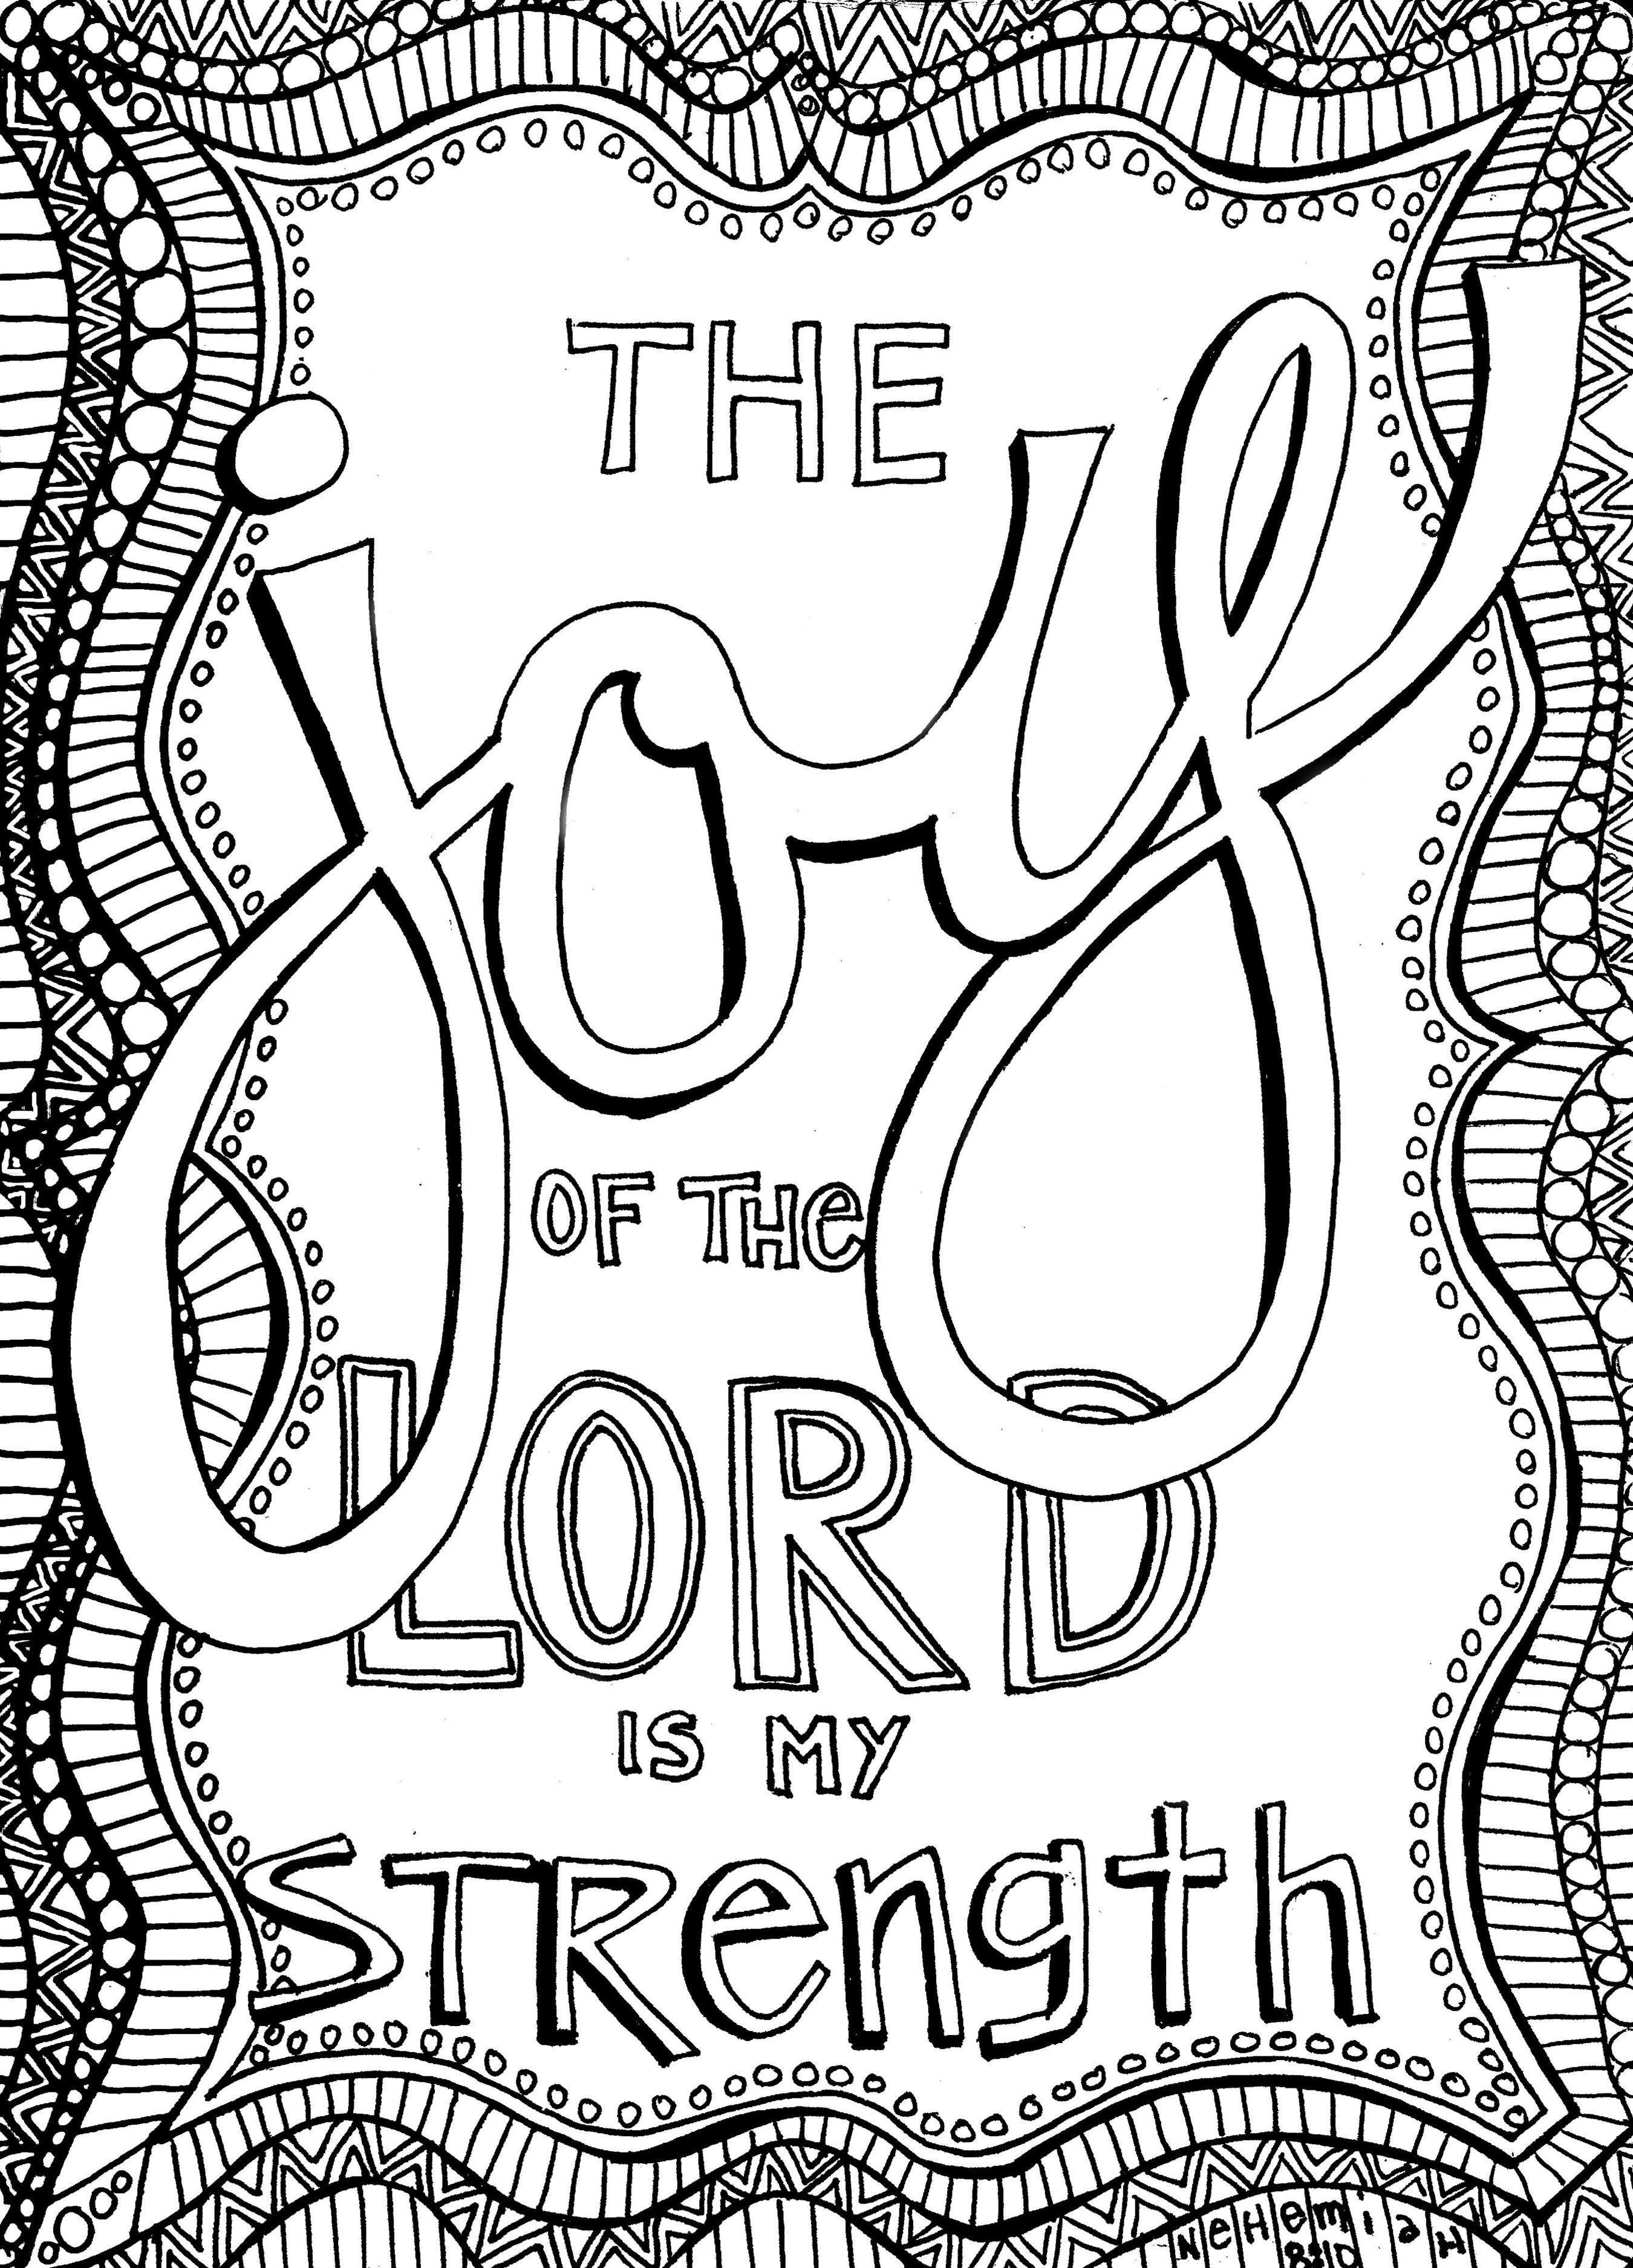 Free Printable Bible Verse Coloring Pages For Adults Best Of Awesome - Free Printable Bible Coloring Pages With Scriptures